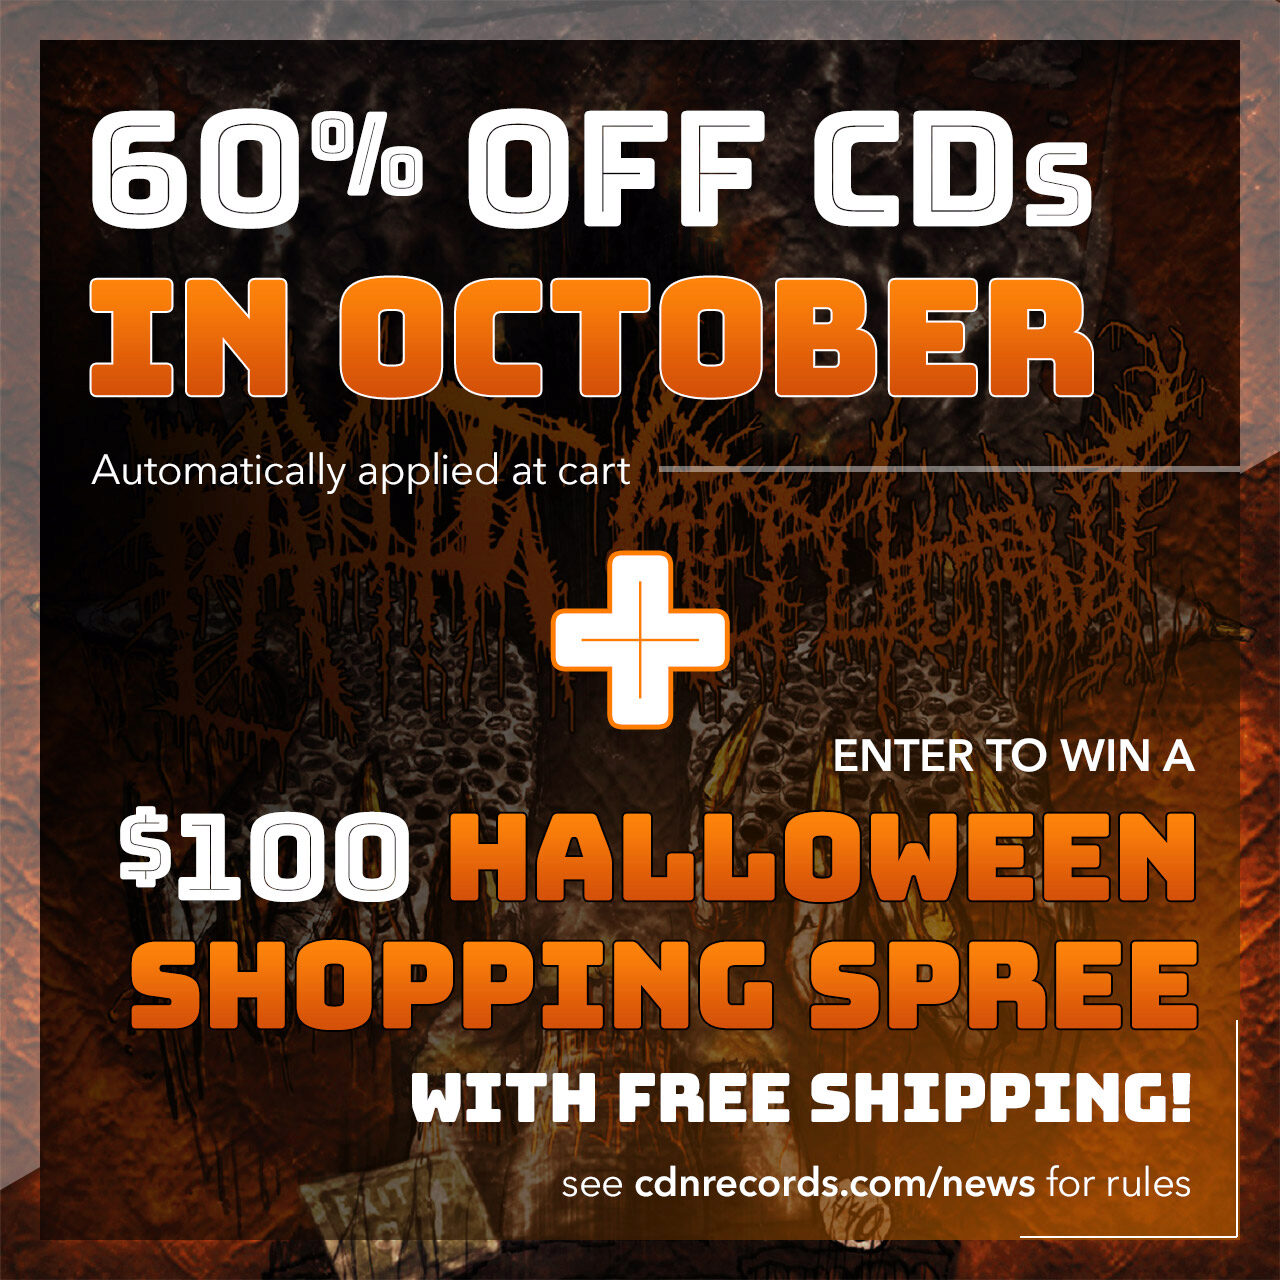 Updated promo graphic for 60% off CDs and Halloween Shopping Spree contest